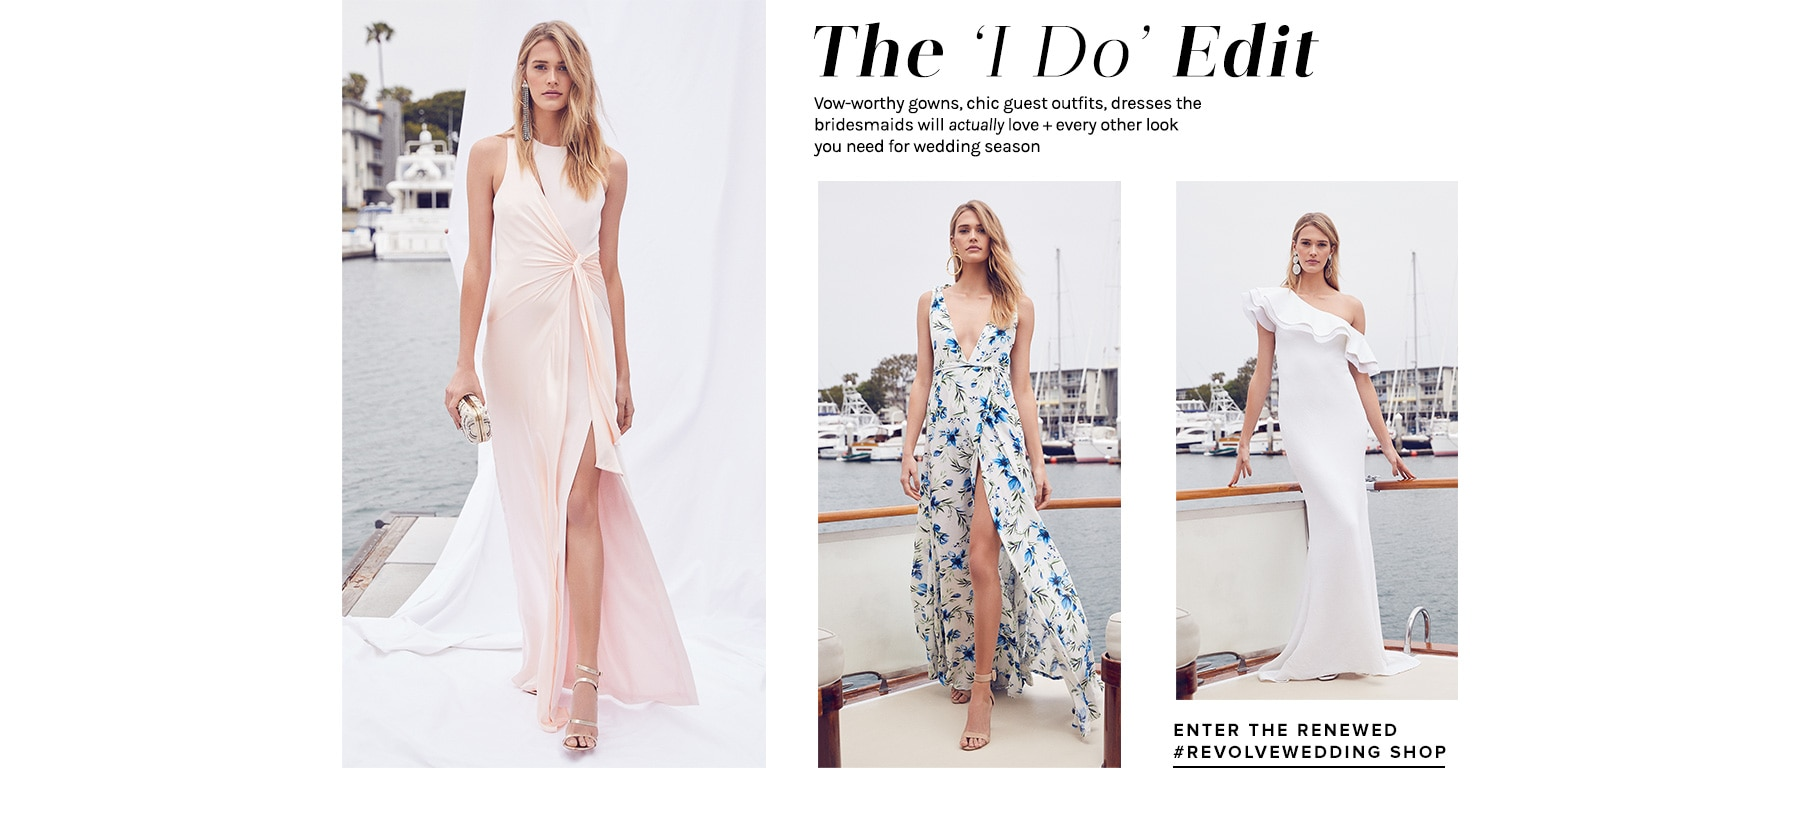 The 'I Do' Edit. Vow-worthy gowns, chic guest outfits, dresses the bridesmaids will actually love + every other look you need for wedding season. Enter The Renewed REVOLVEwedding Shop.